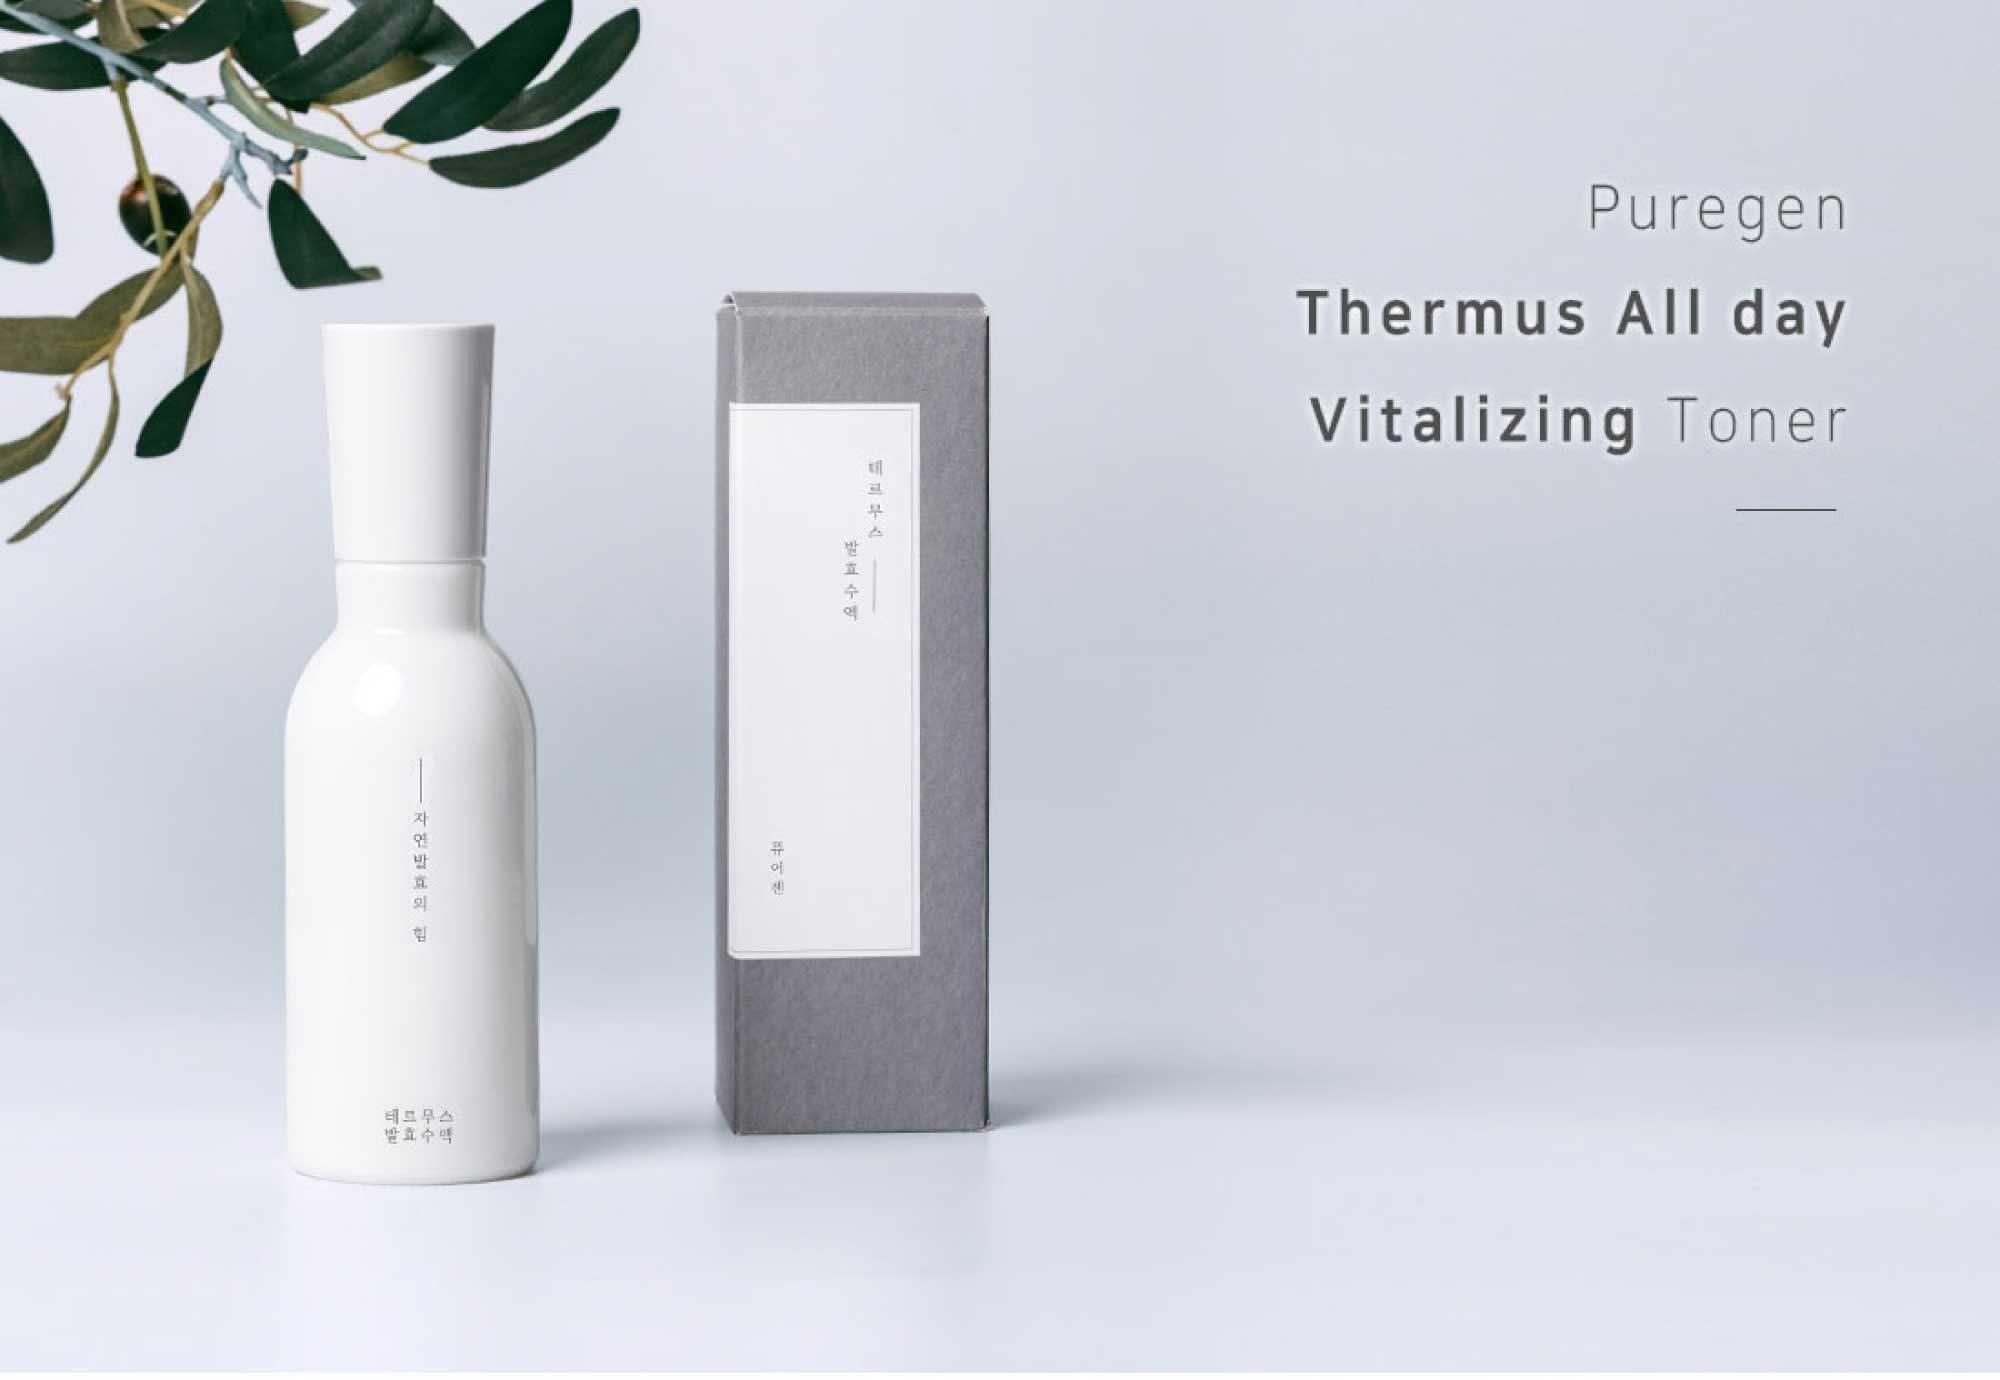 Thermus All day Vitalizing Toner 120ml